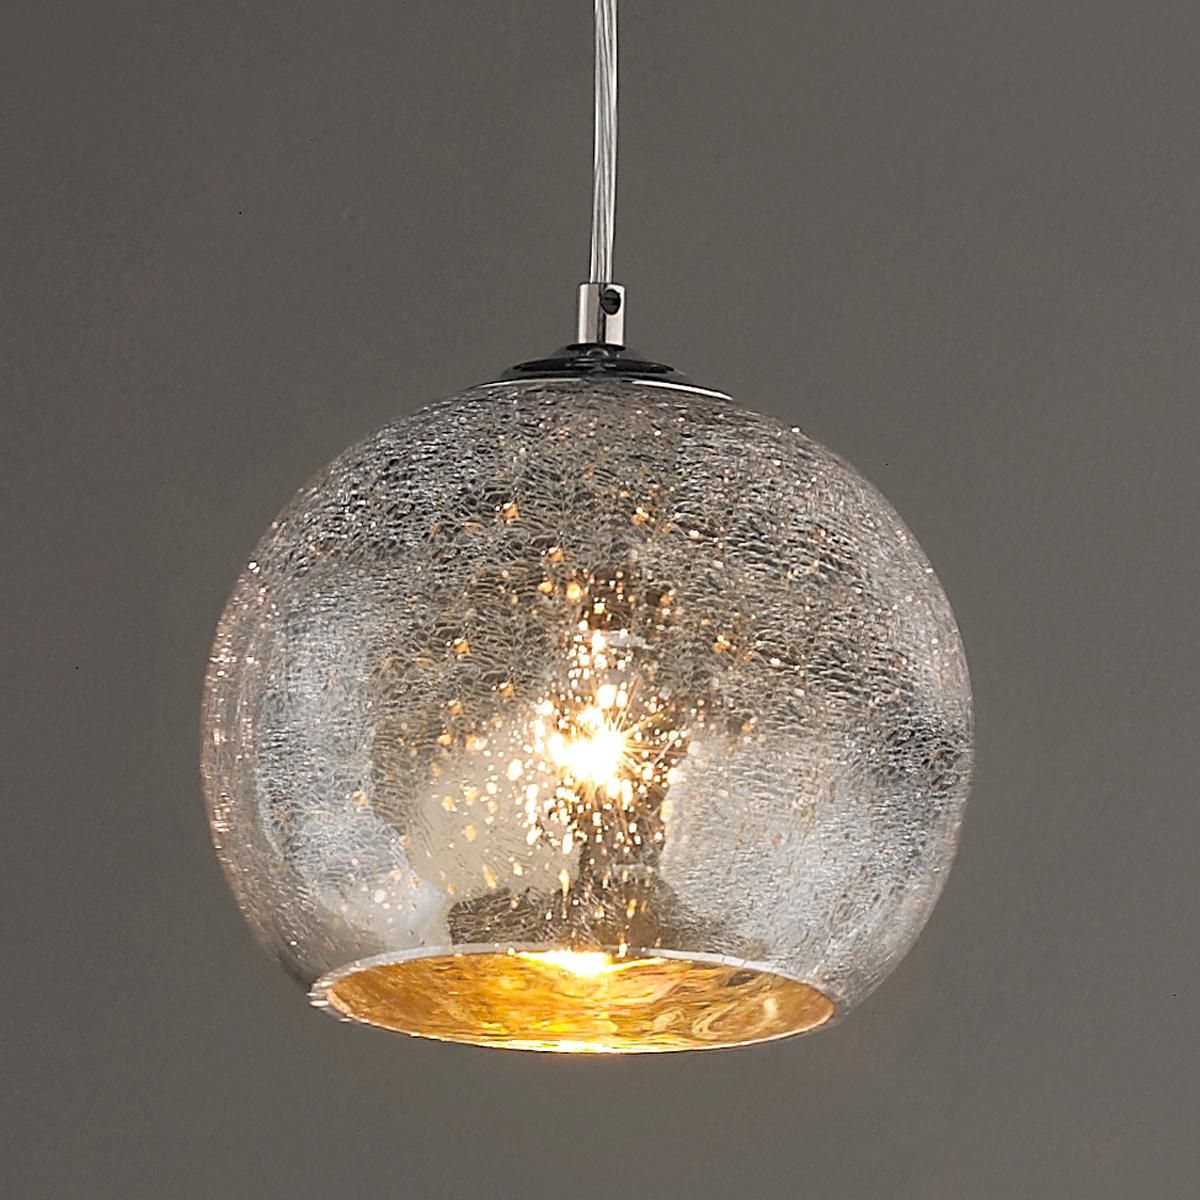 Mini Crackled Mercury Bowl Pendant Light Glass Pendant Light